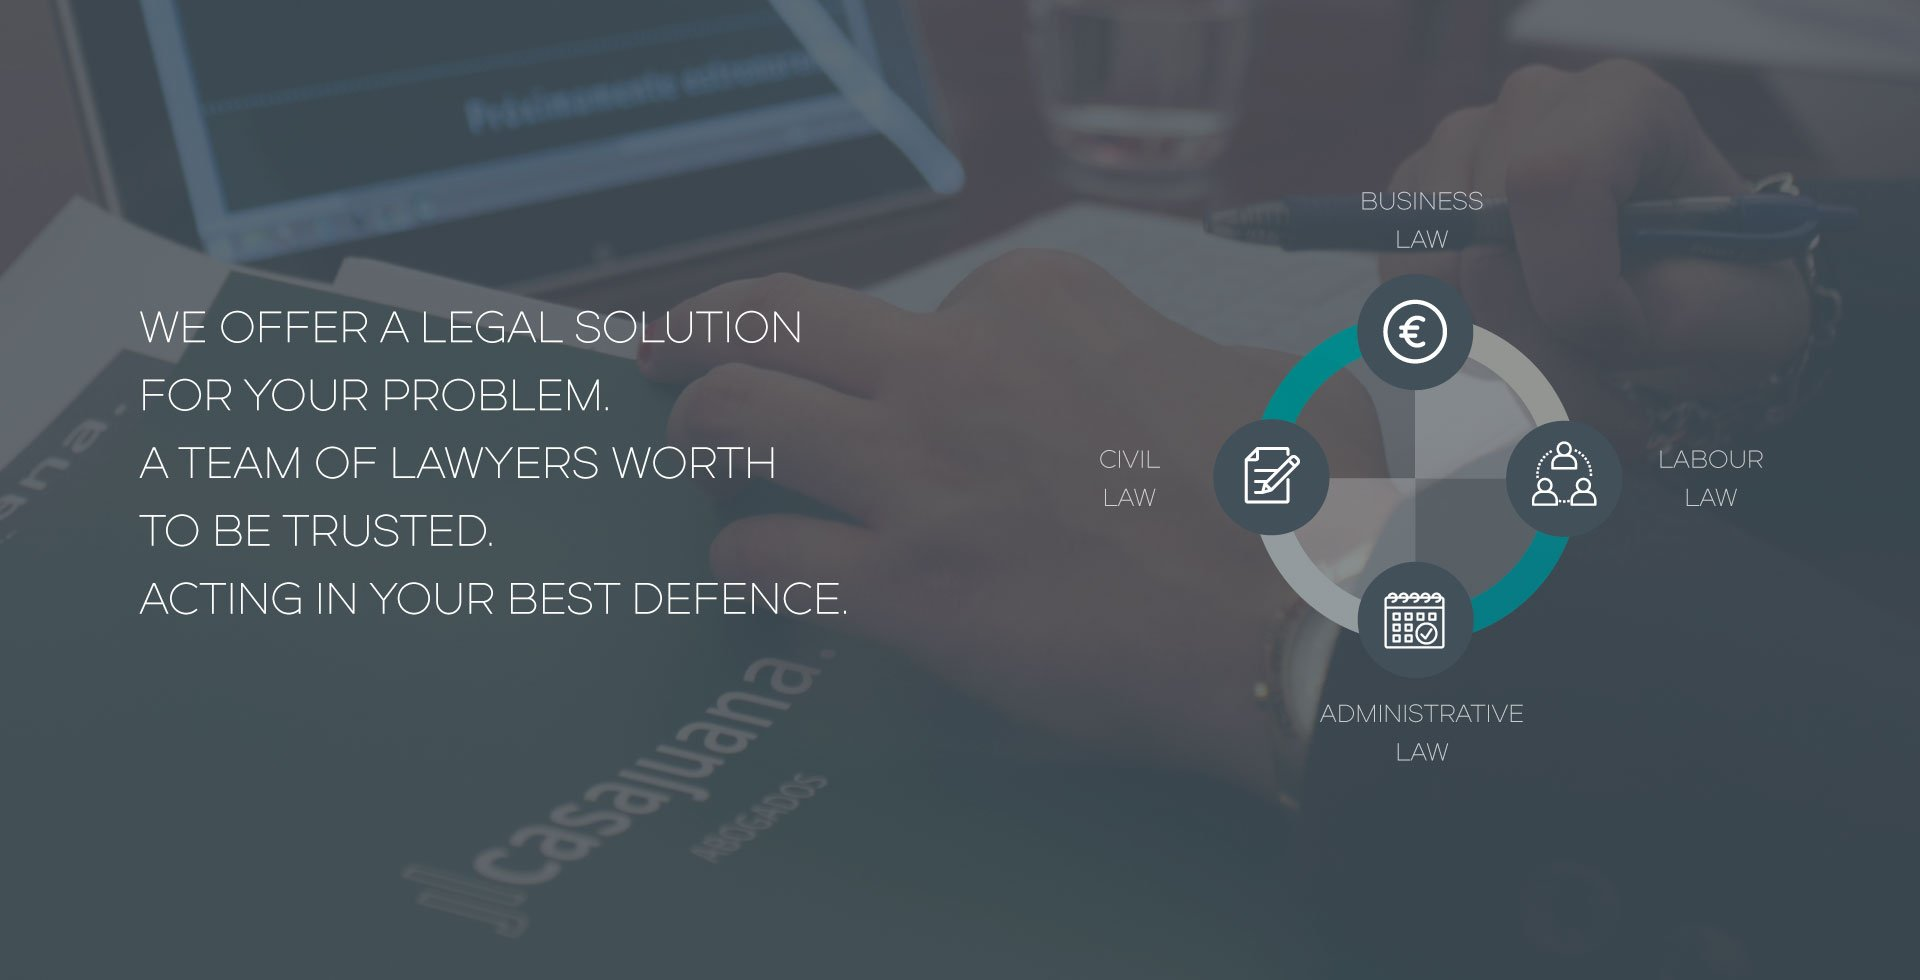 We offer a legal solution for your problem. A team of lawyers worth to be trusted. Acting in your best defence.